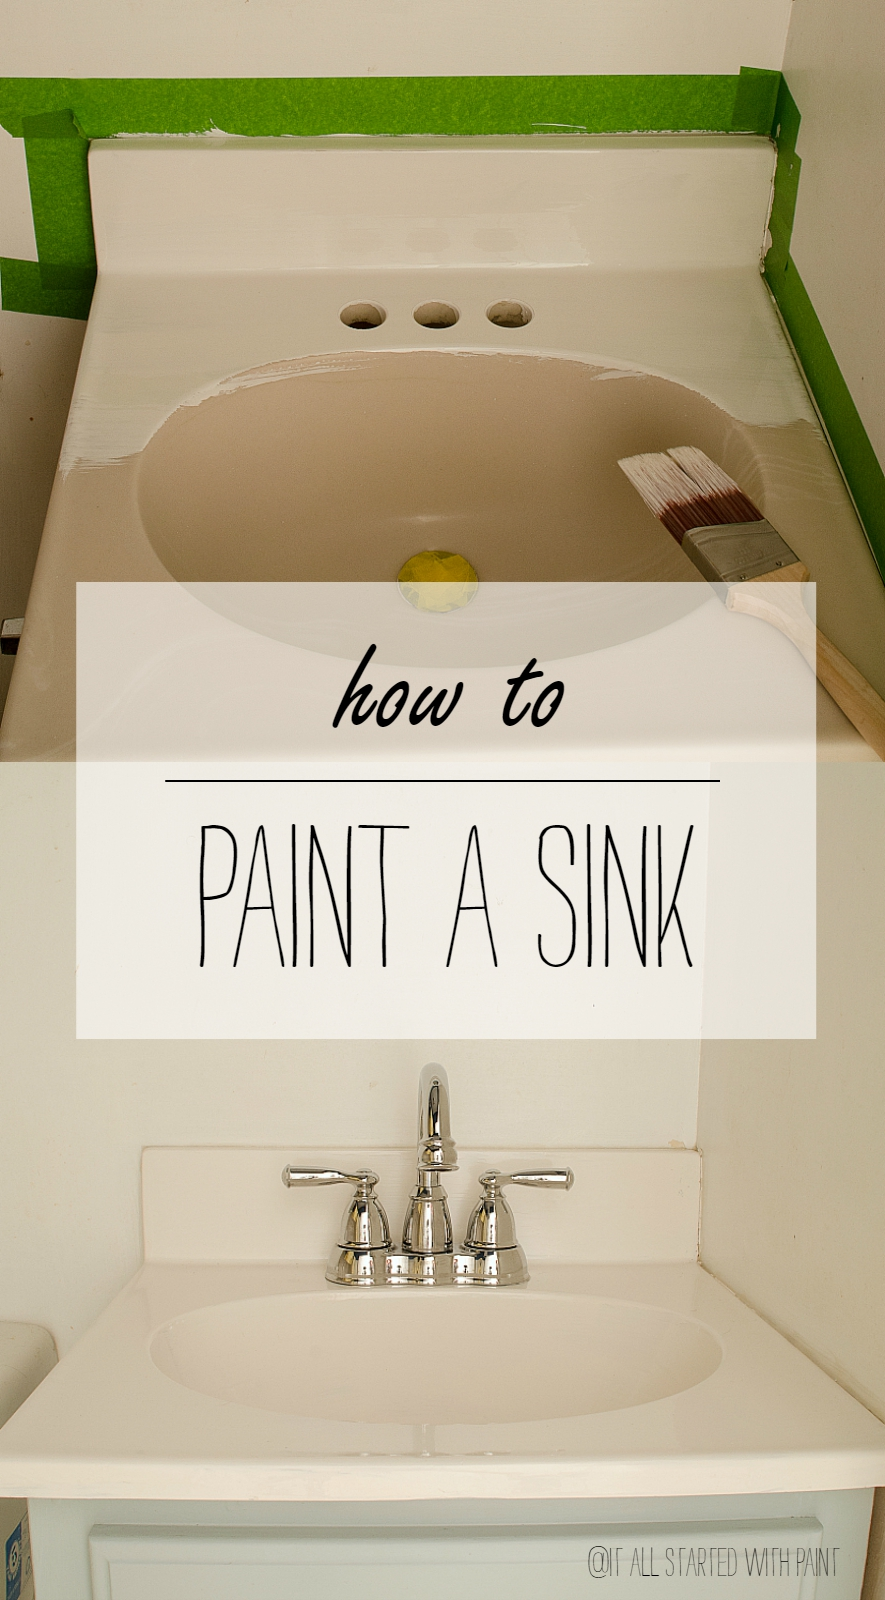 How To Paint A Sink - Painting bathroom vanity laminate